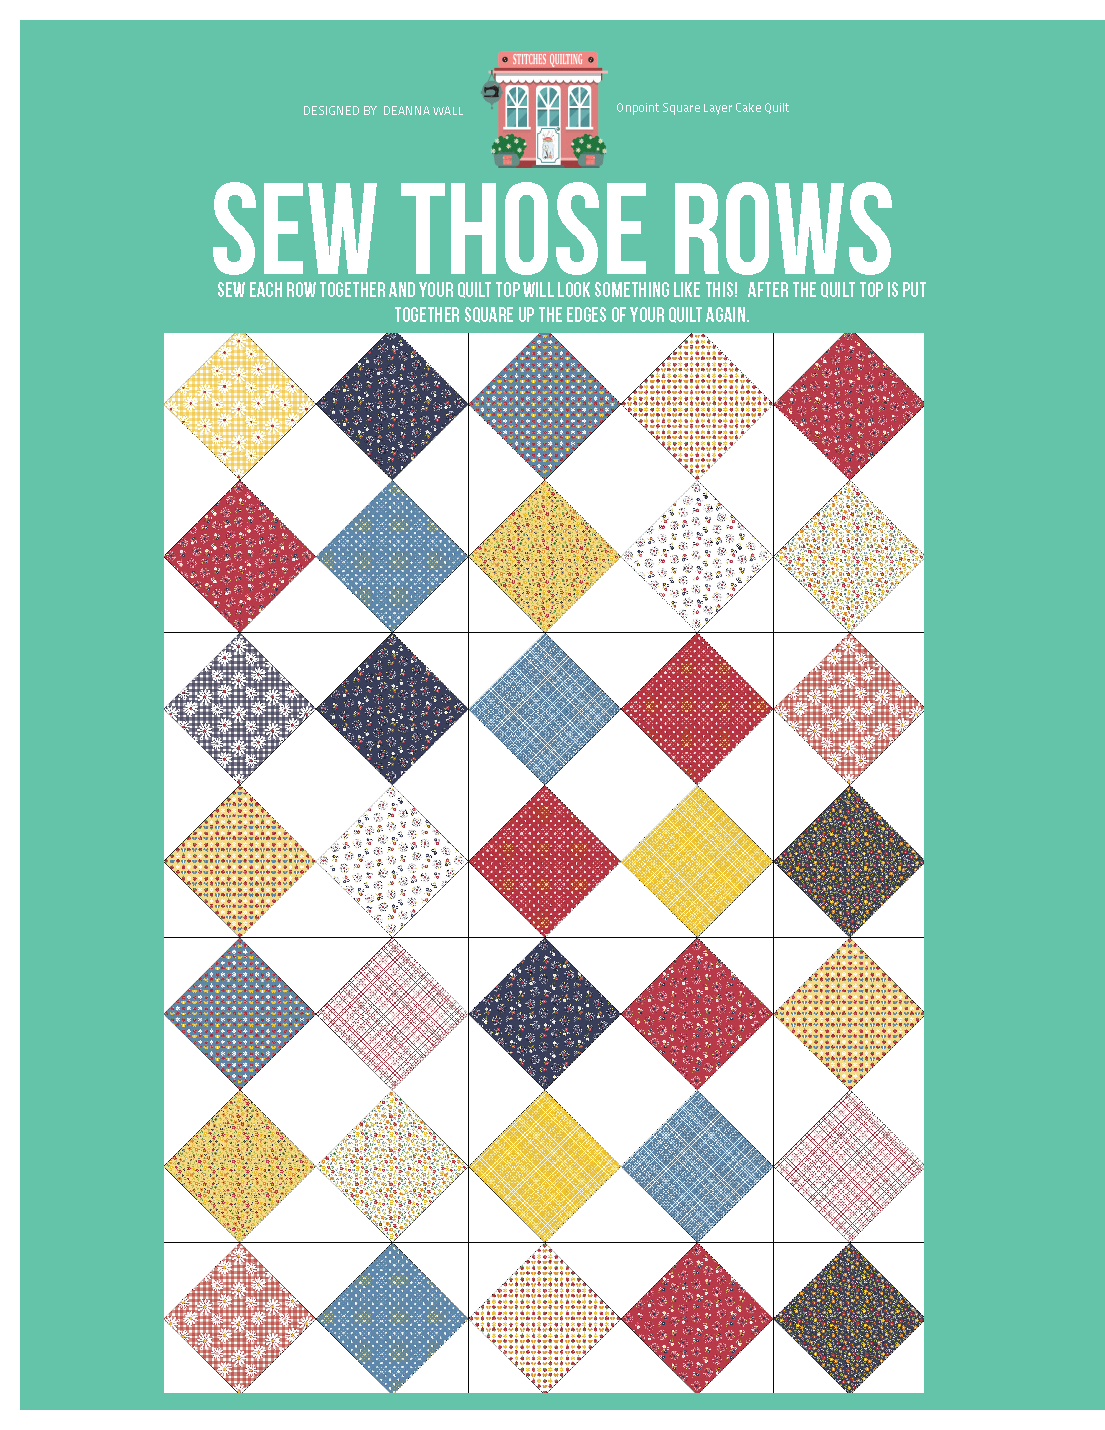 Sew your rows together to build your quilt top into one piece matching your block points.